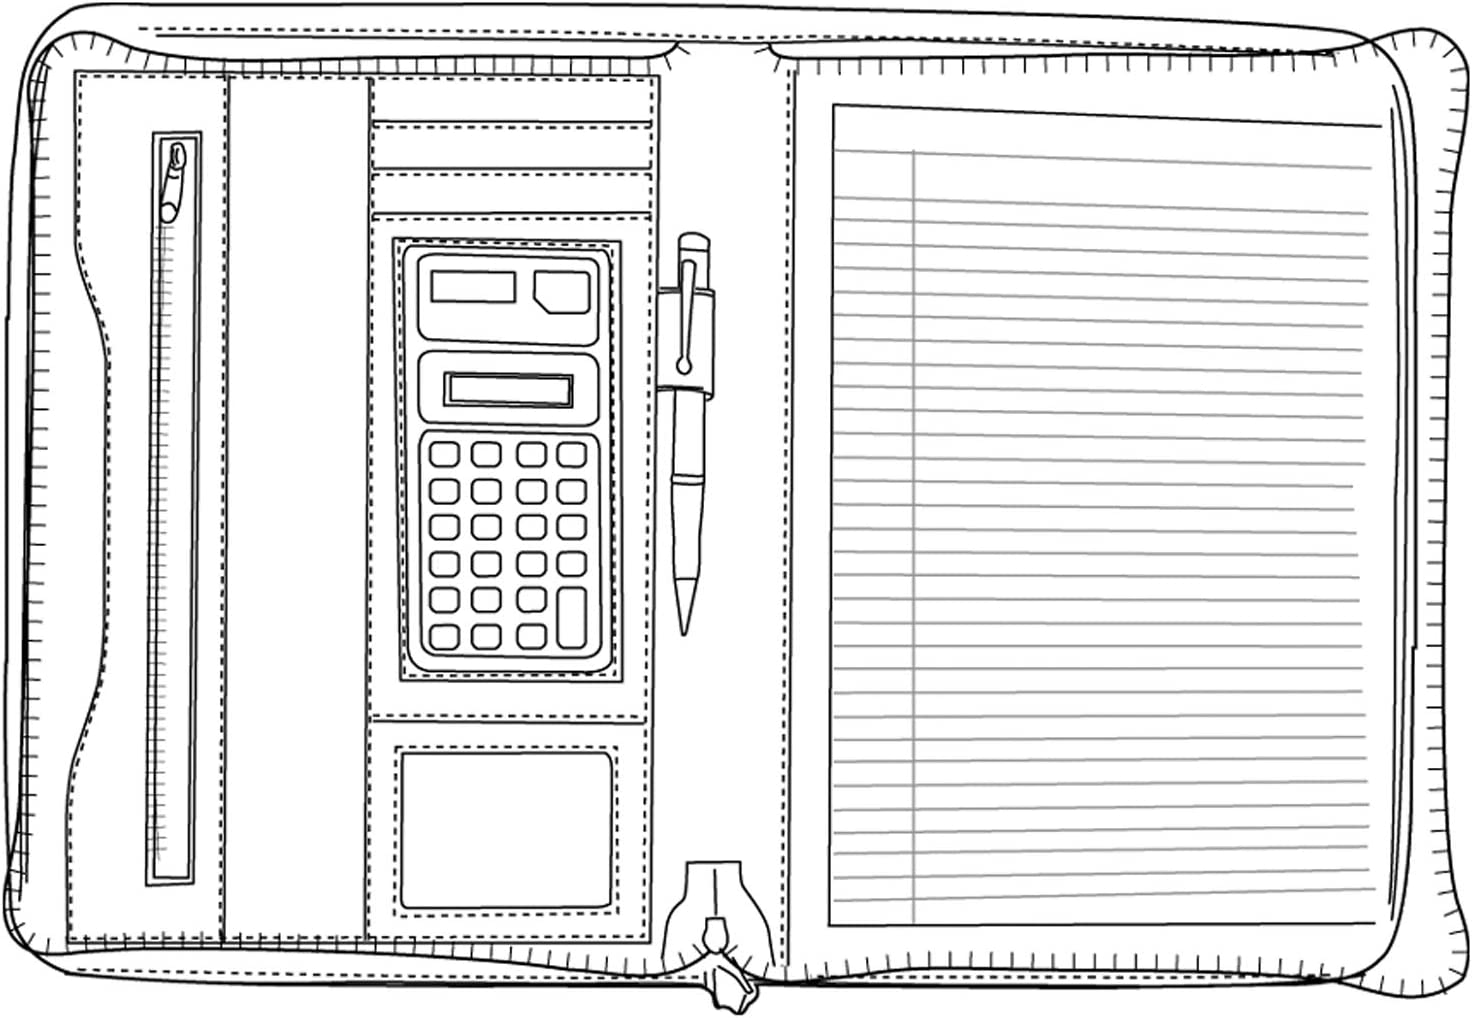 Deluxe Business Organizer Pad-Folio with Calculator Note Pad